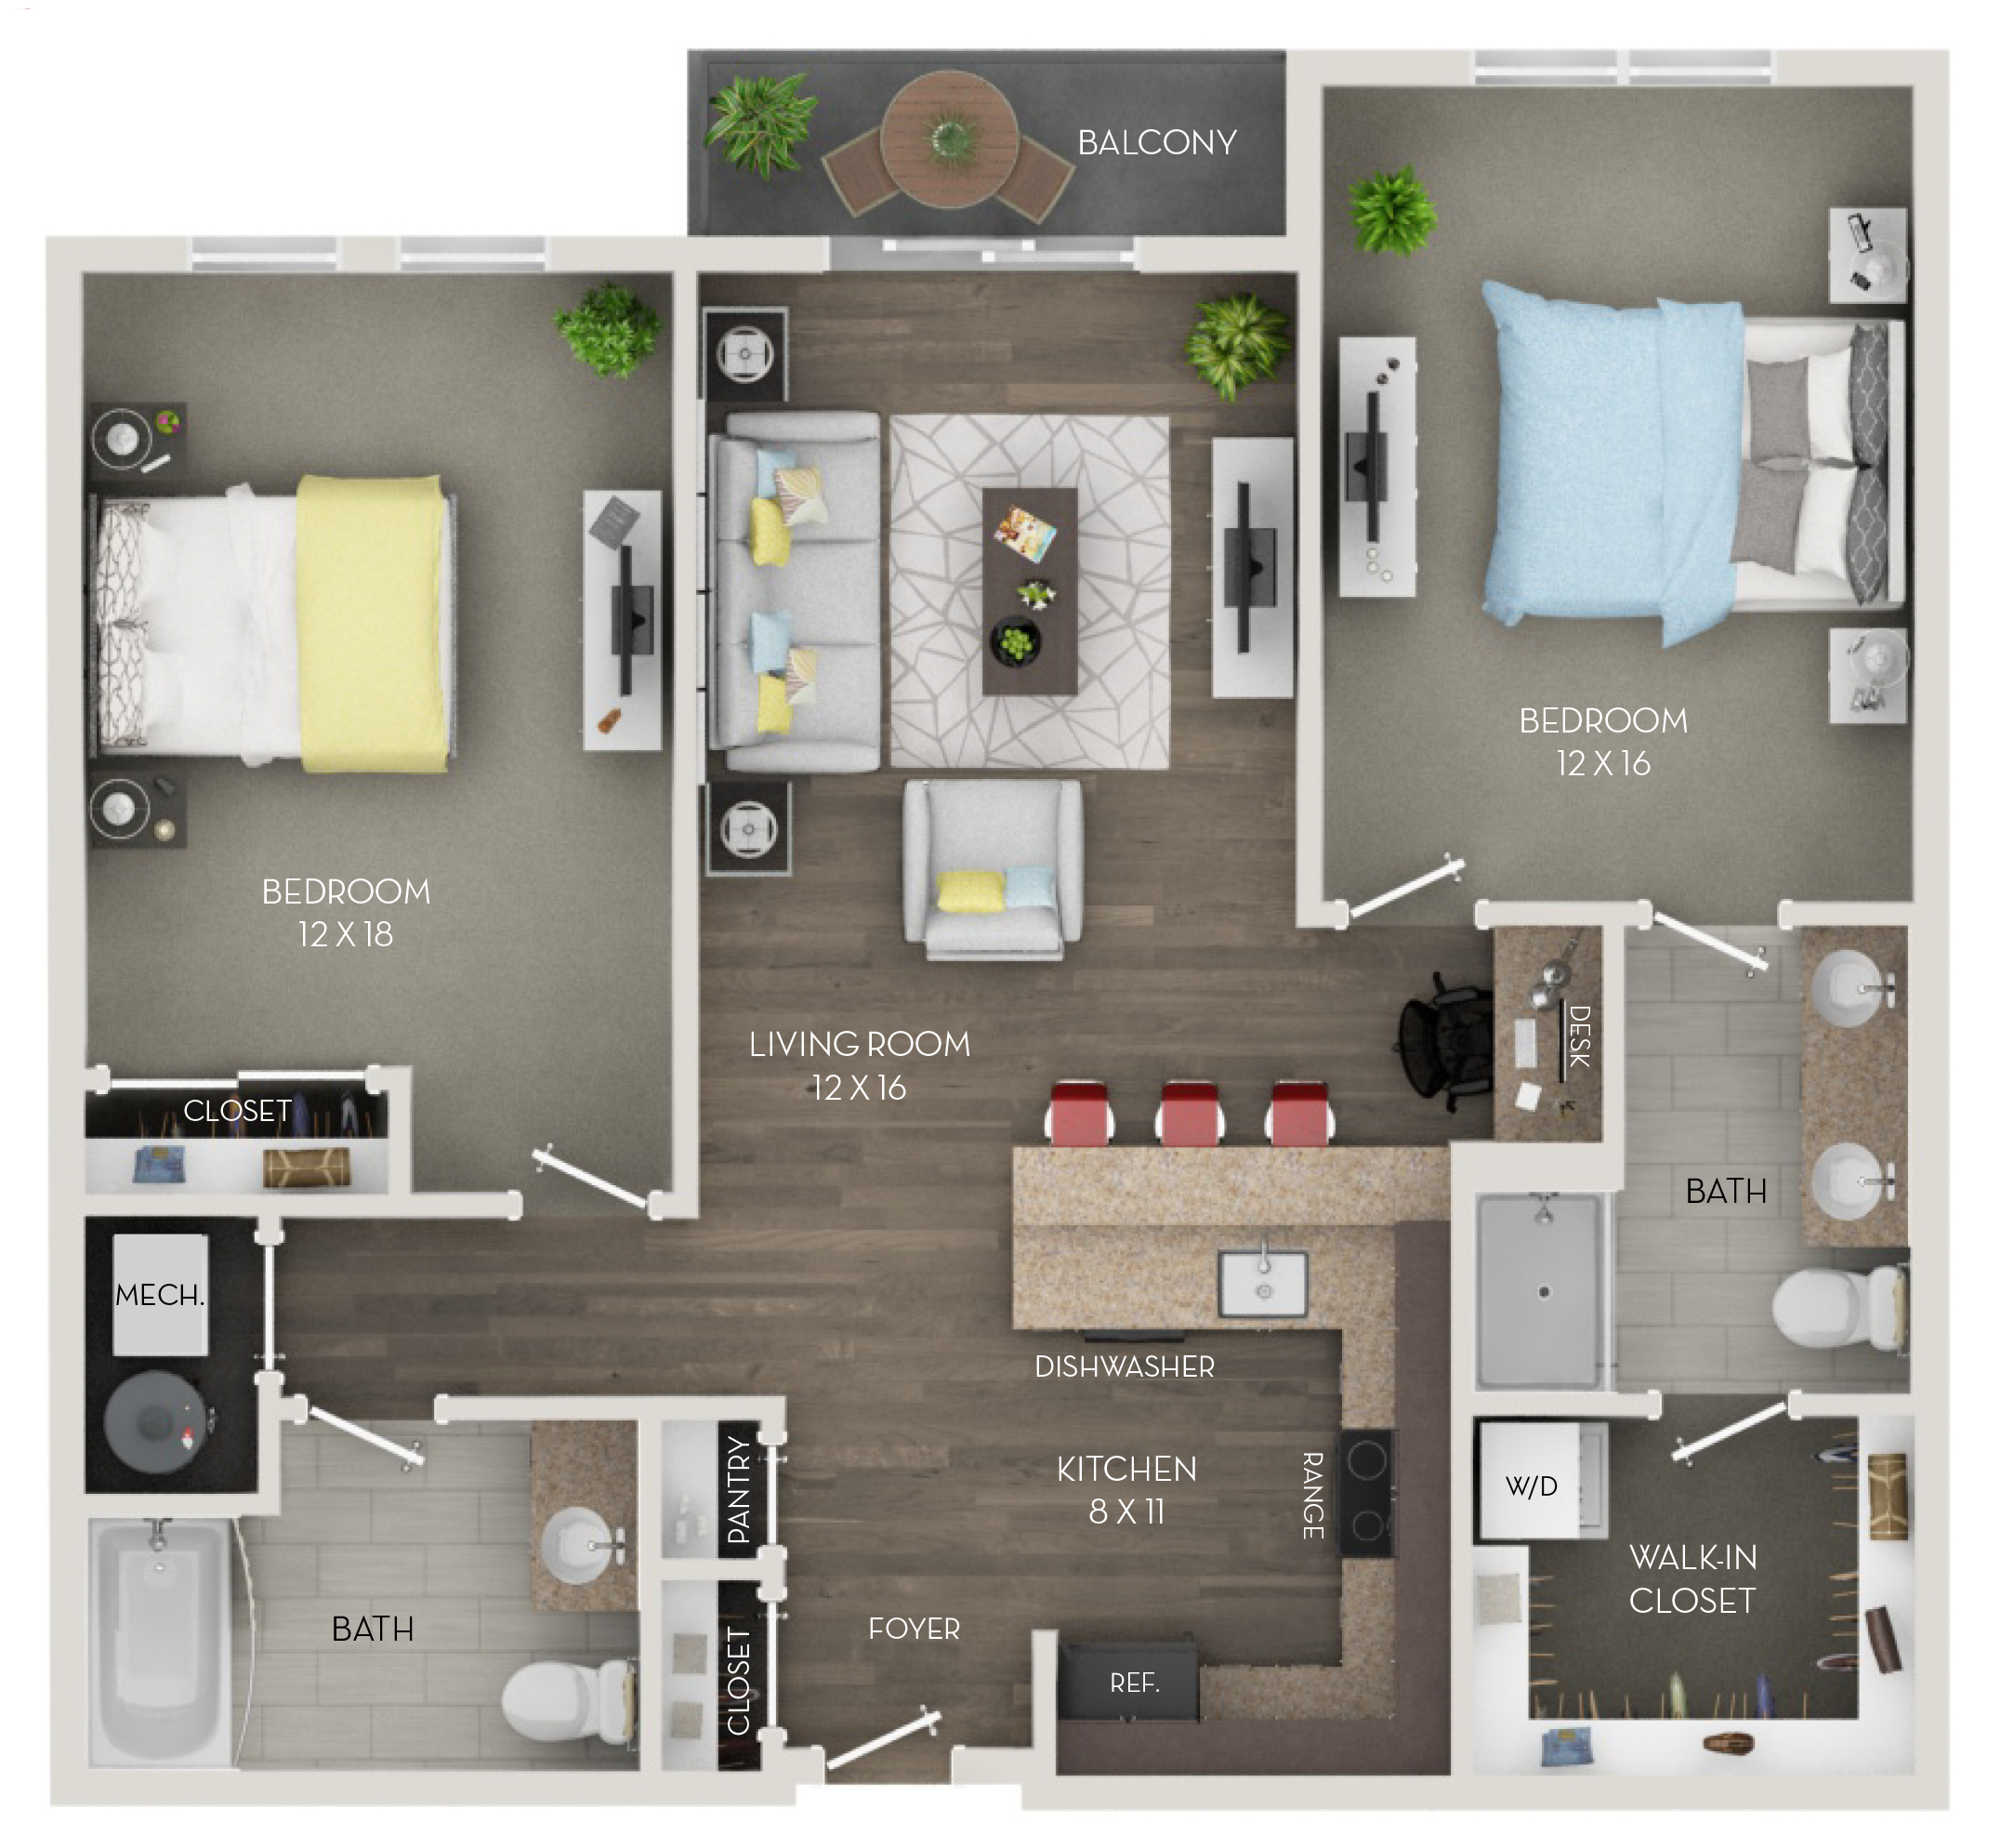 Two Bedroom, Two Bath (C4p)